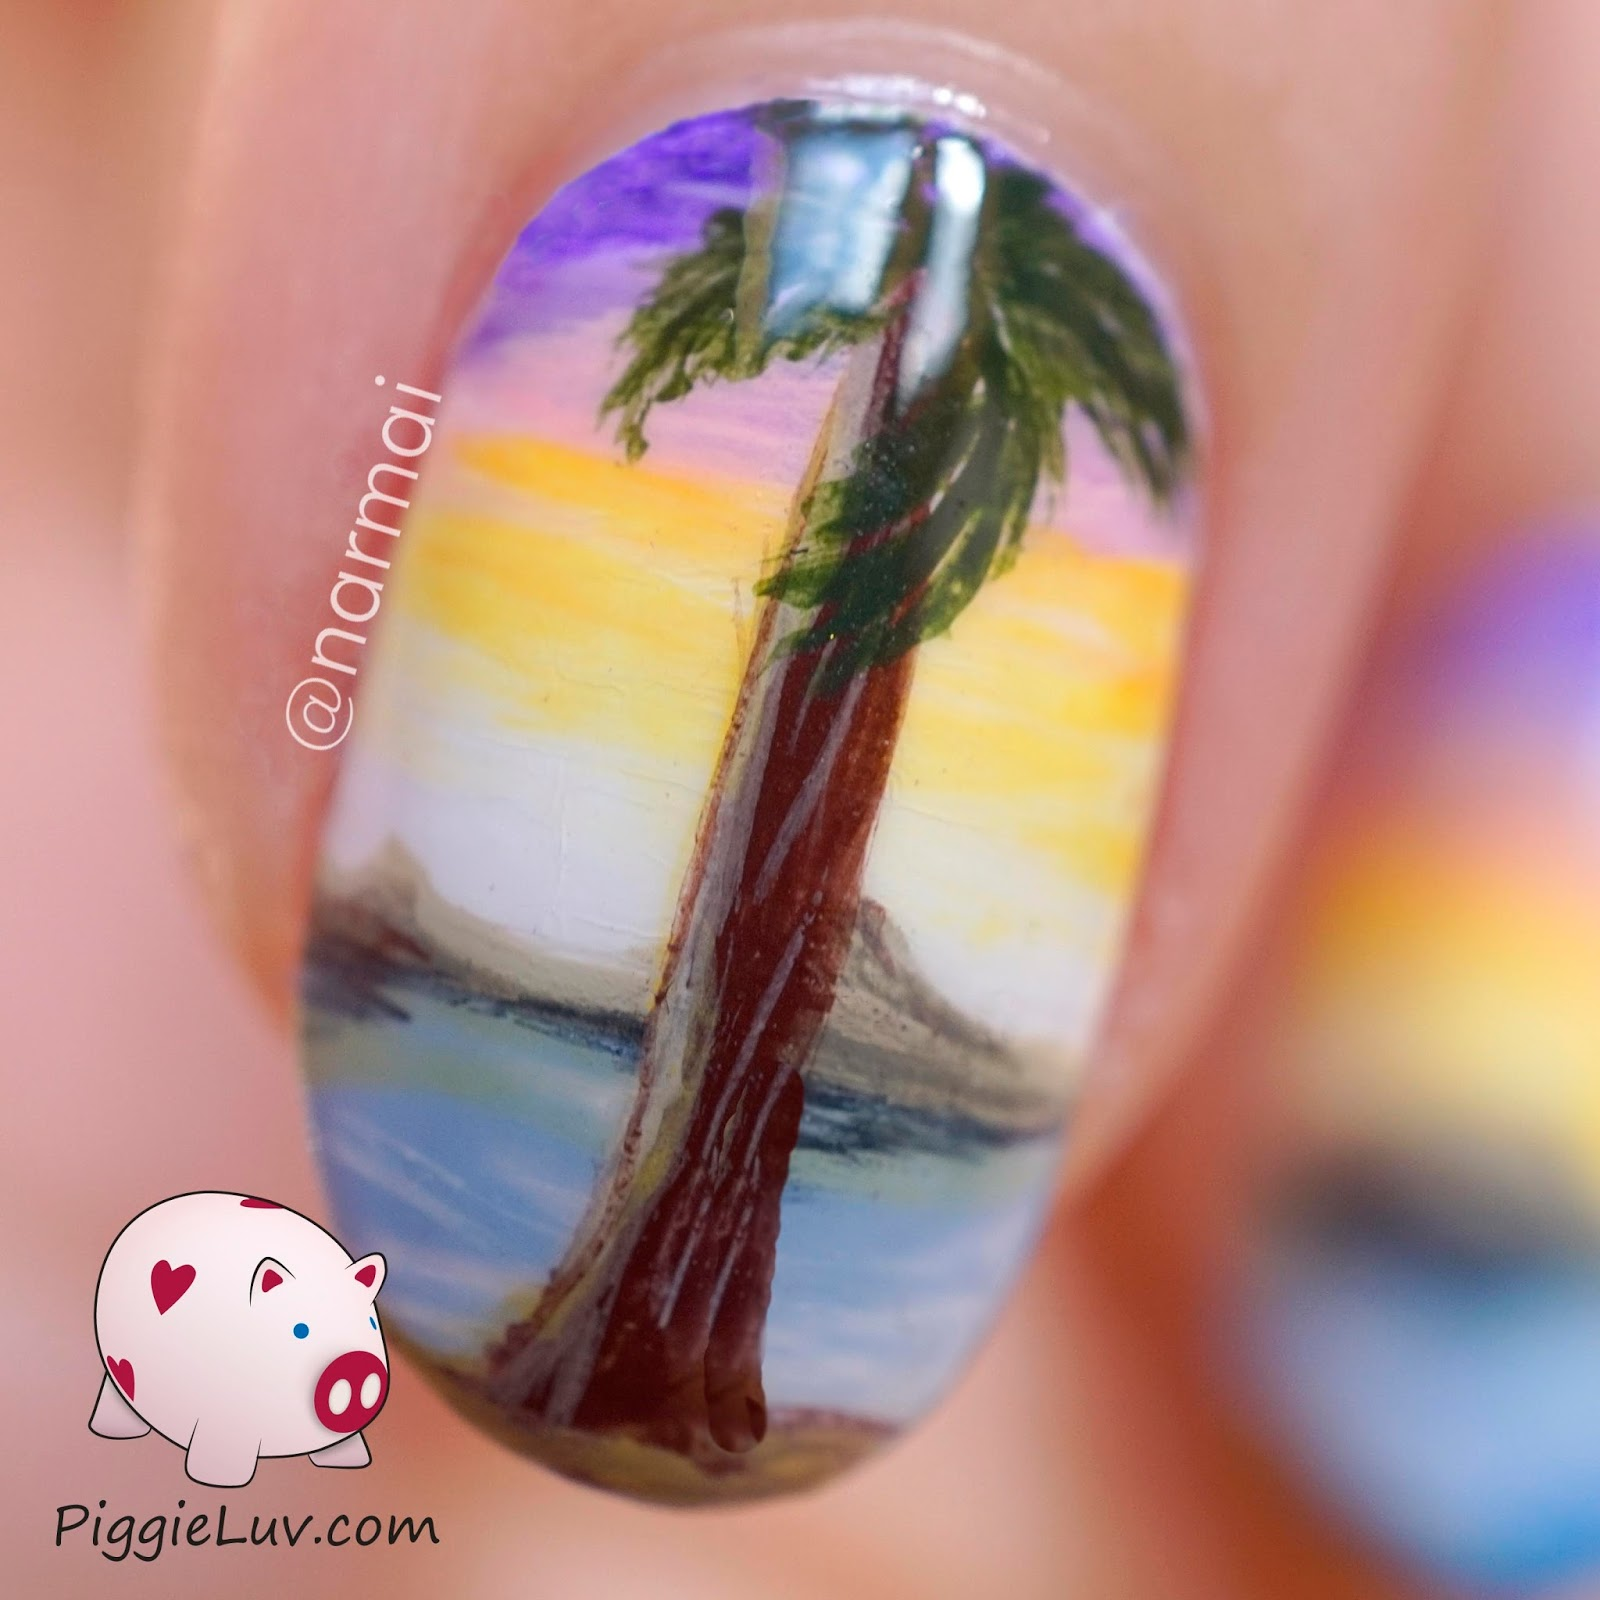 Piggieluv View From A Tropical Beach Freehand Nail Art